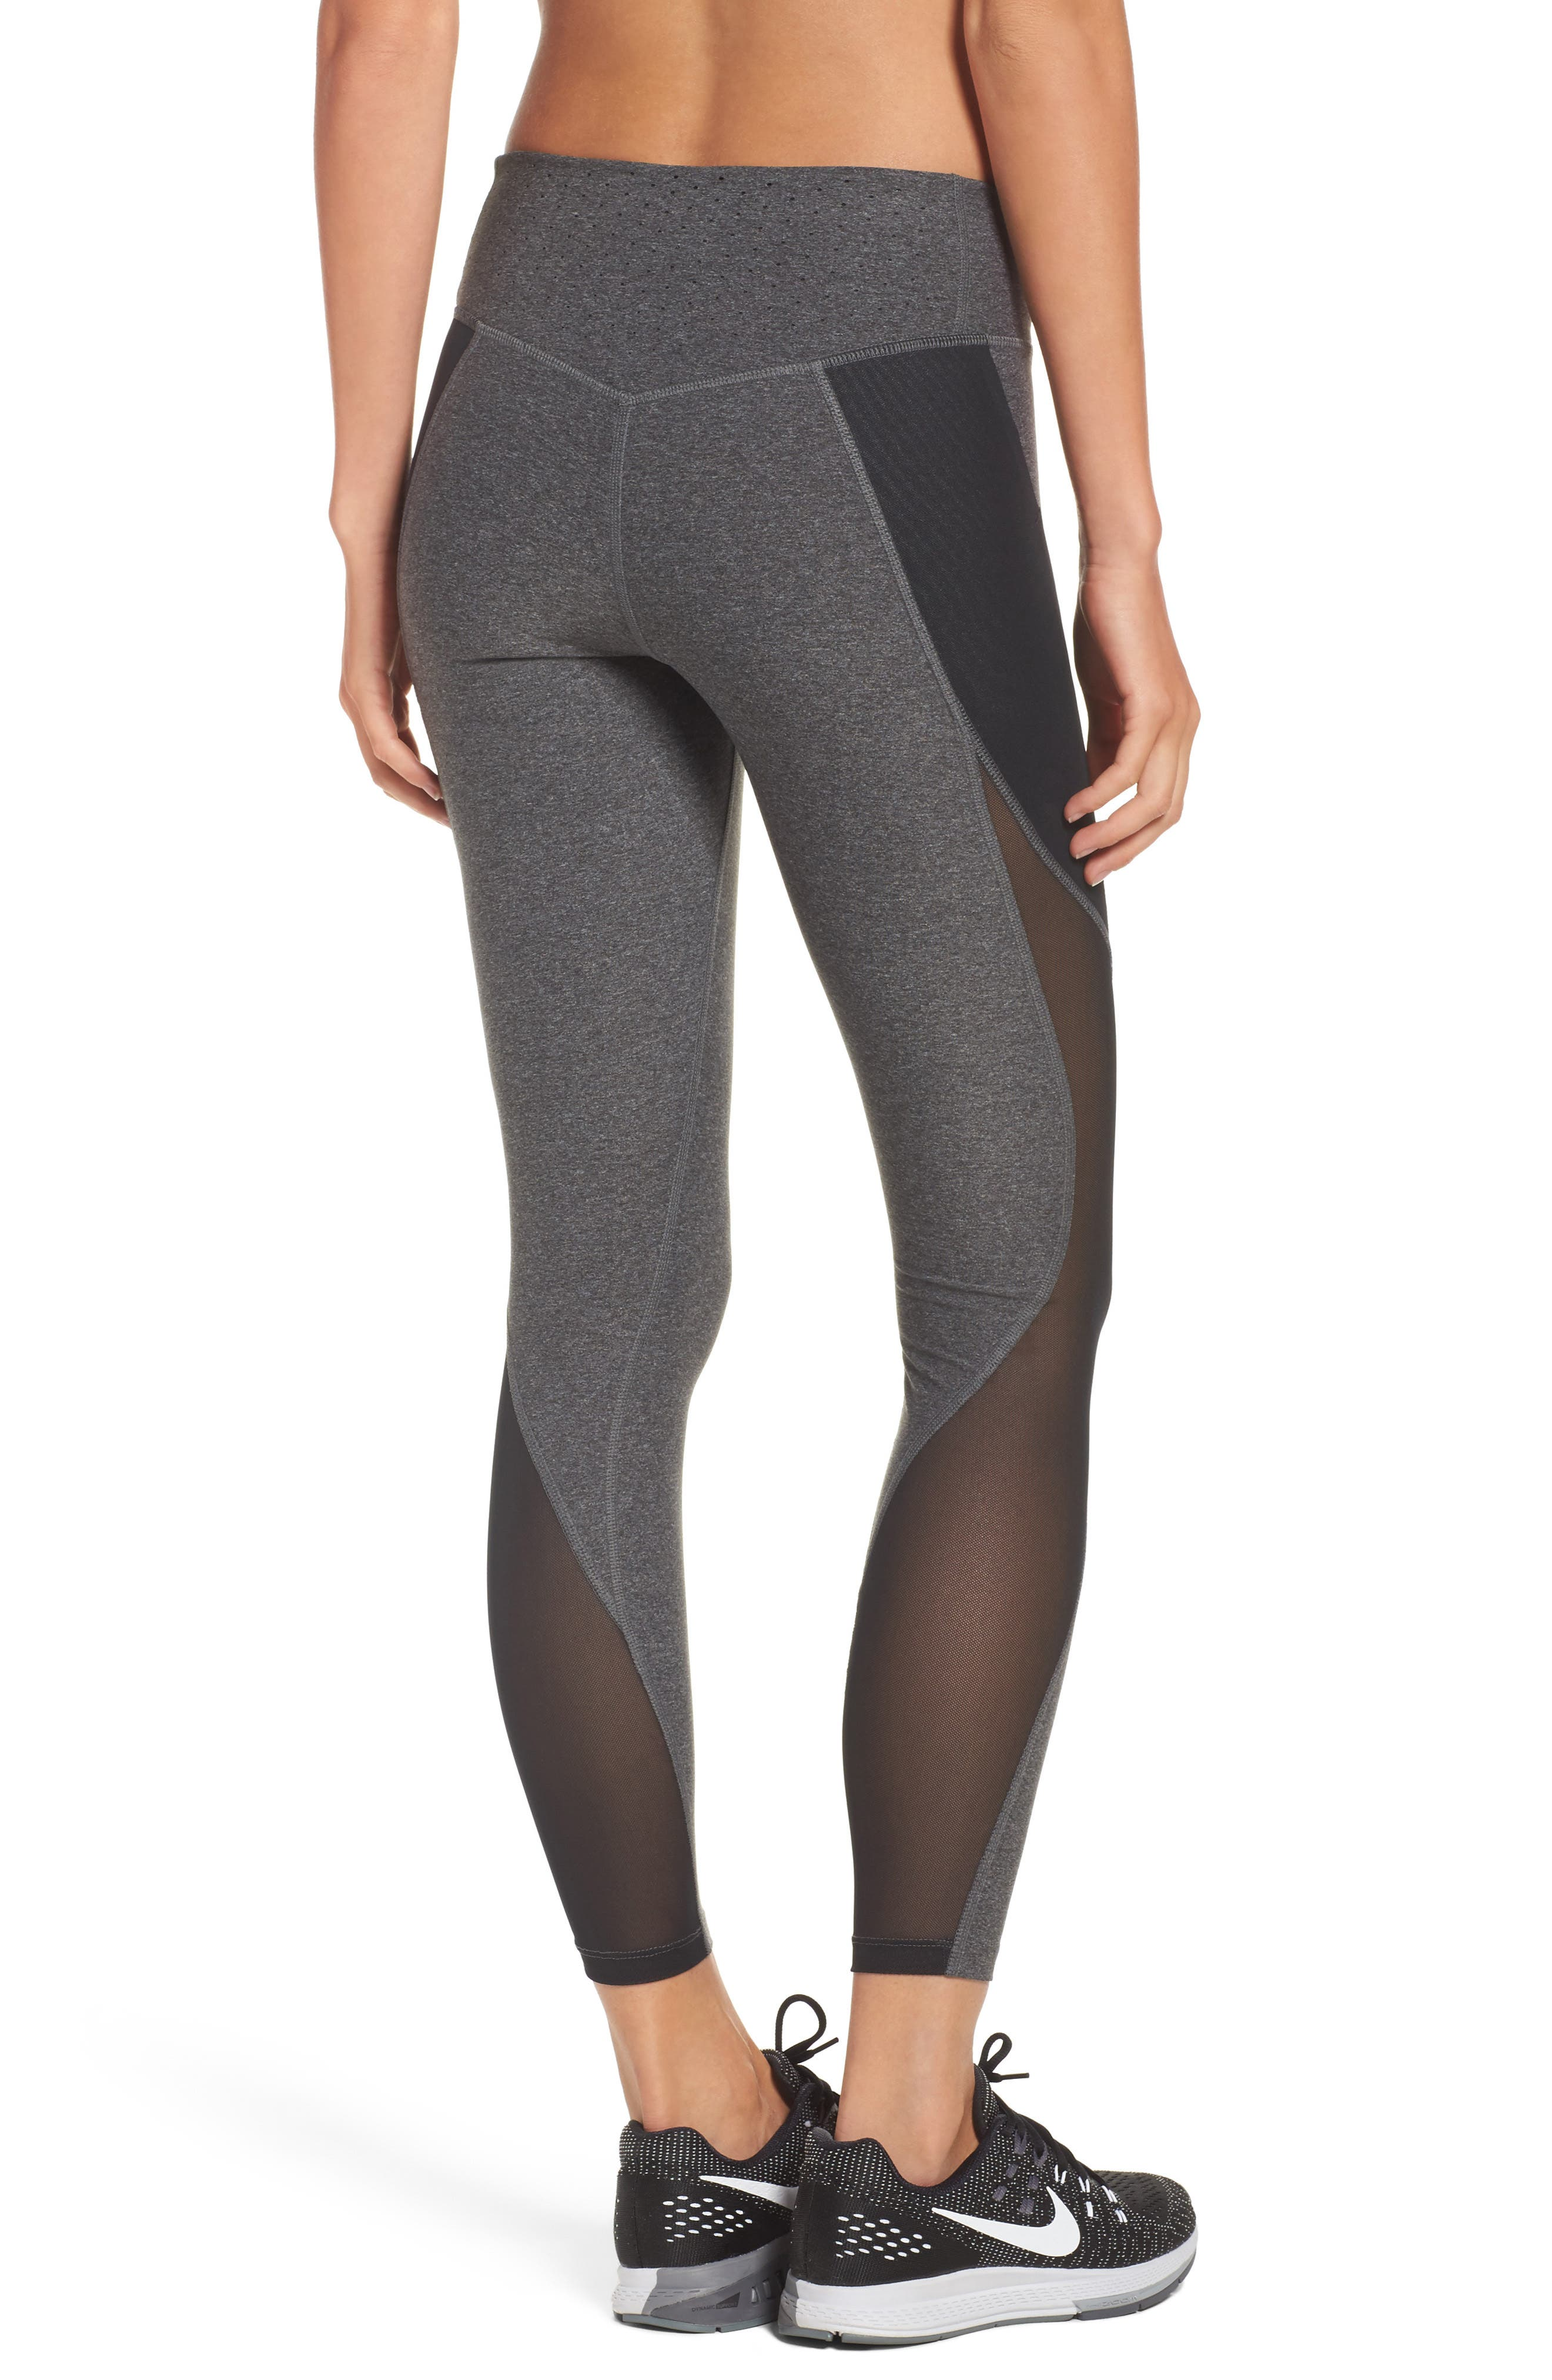 Power Legend Training Tights,                             Alternate thumbnail 2, color,                             071